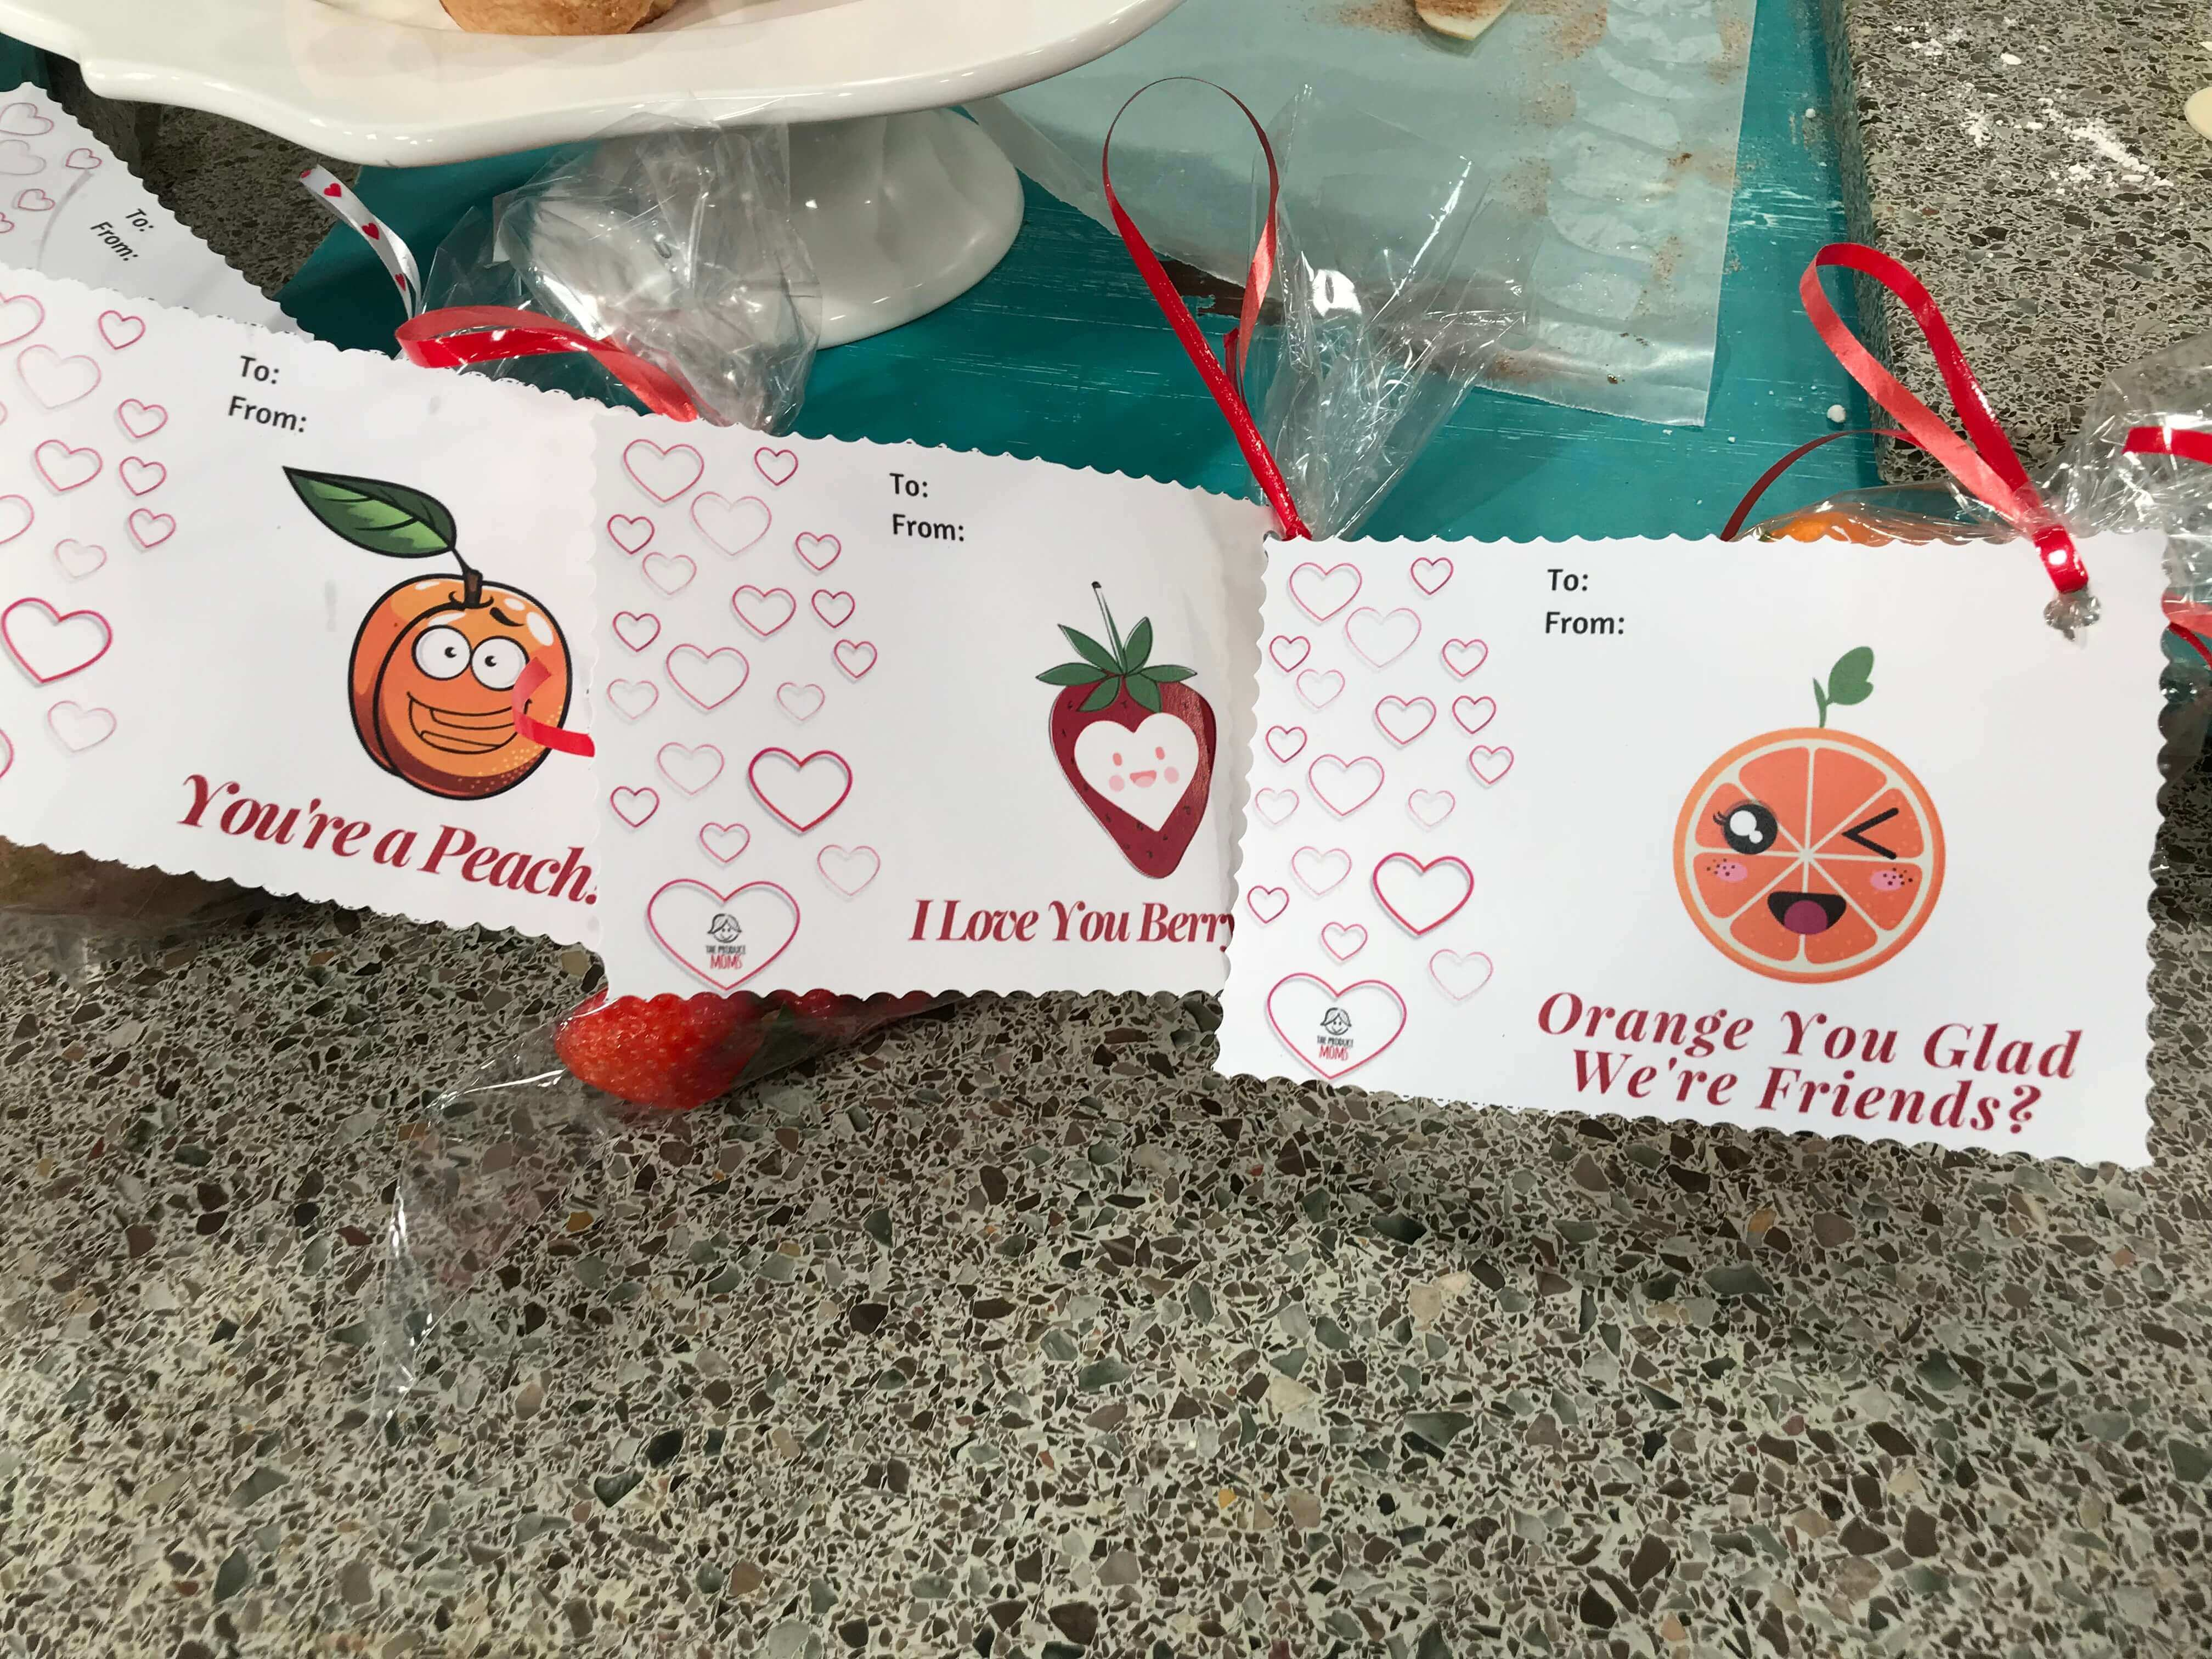 Funny Produce Valentine's Day Cards - FREE DOWNLOAD